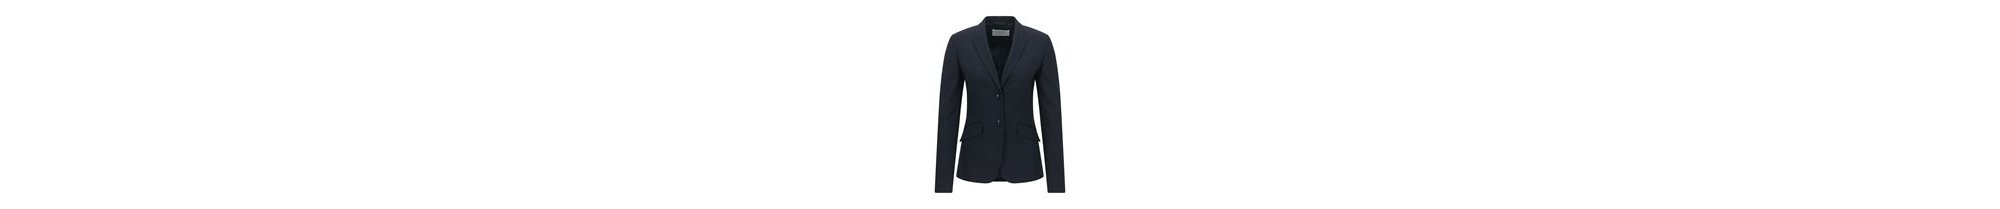 Stretch Virgin Wool Jacket | Julea, Open Blue